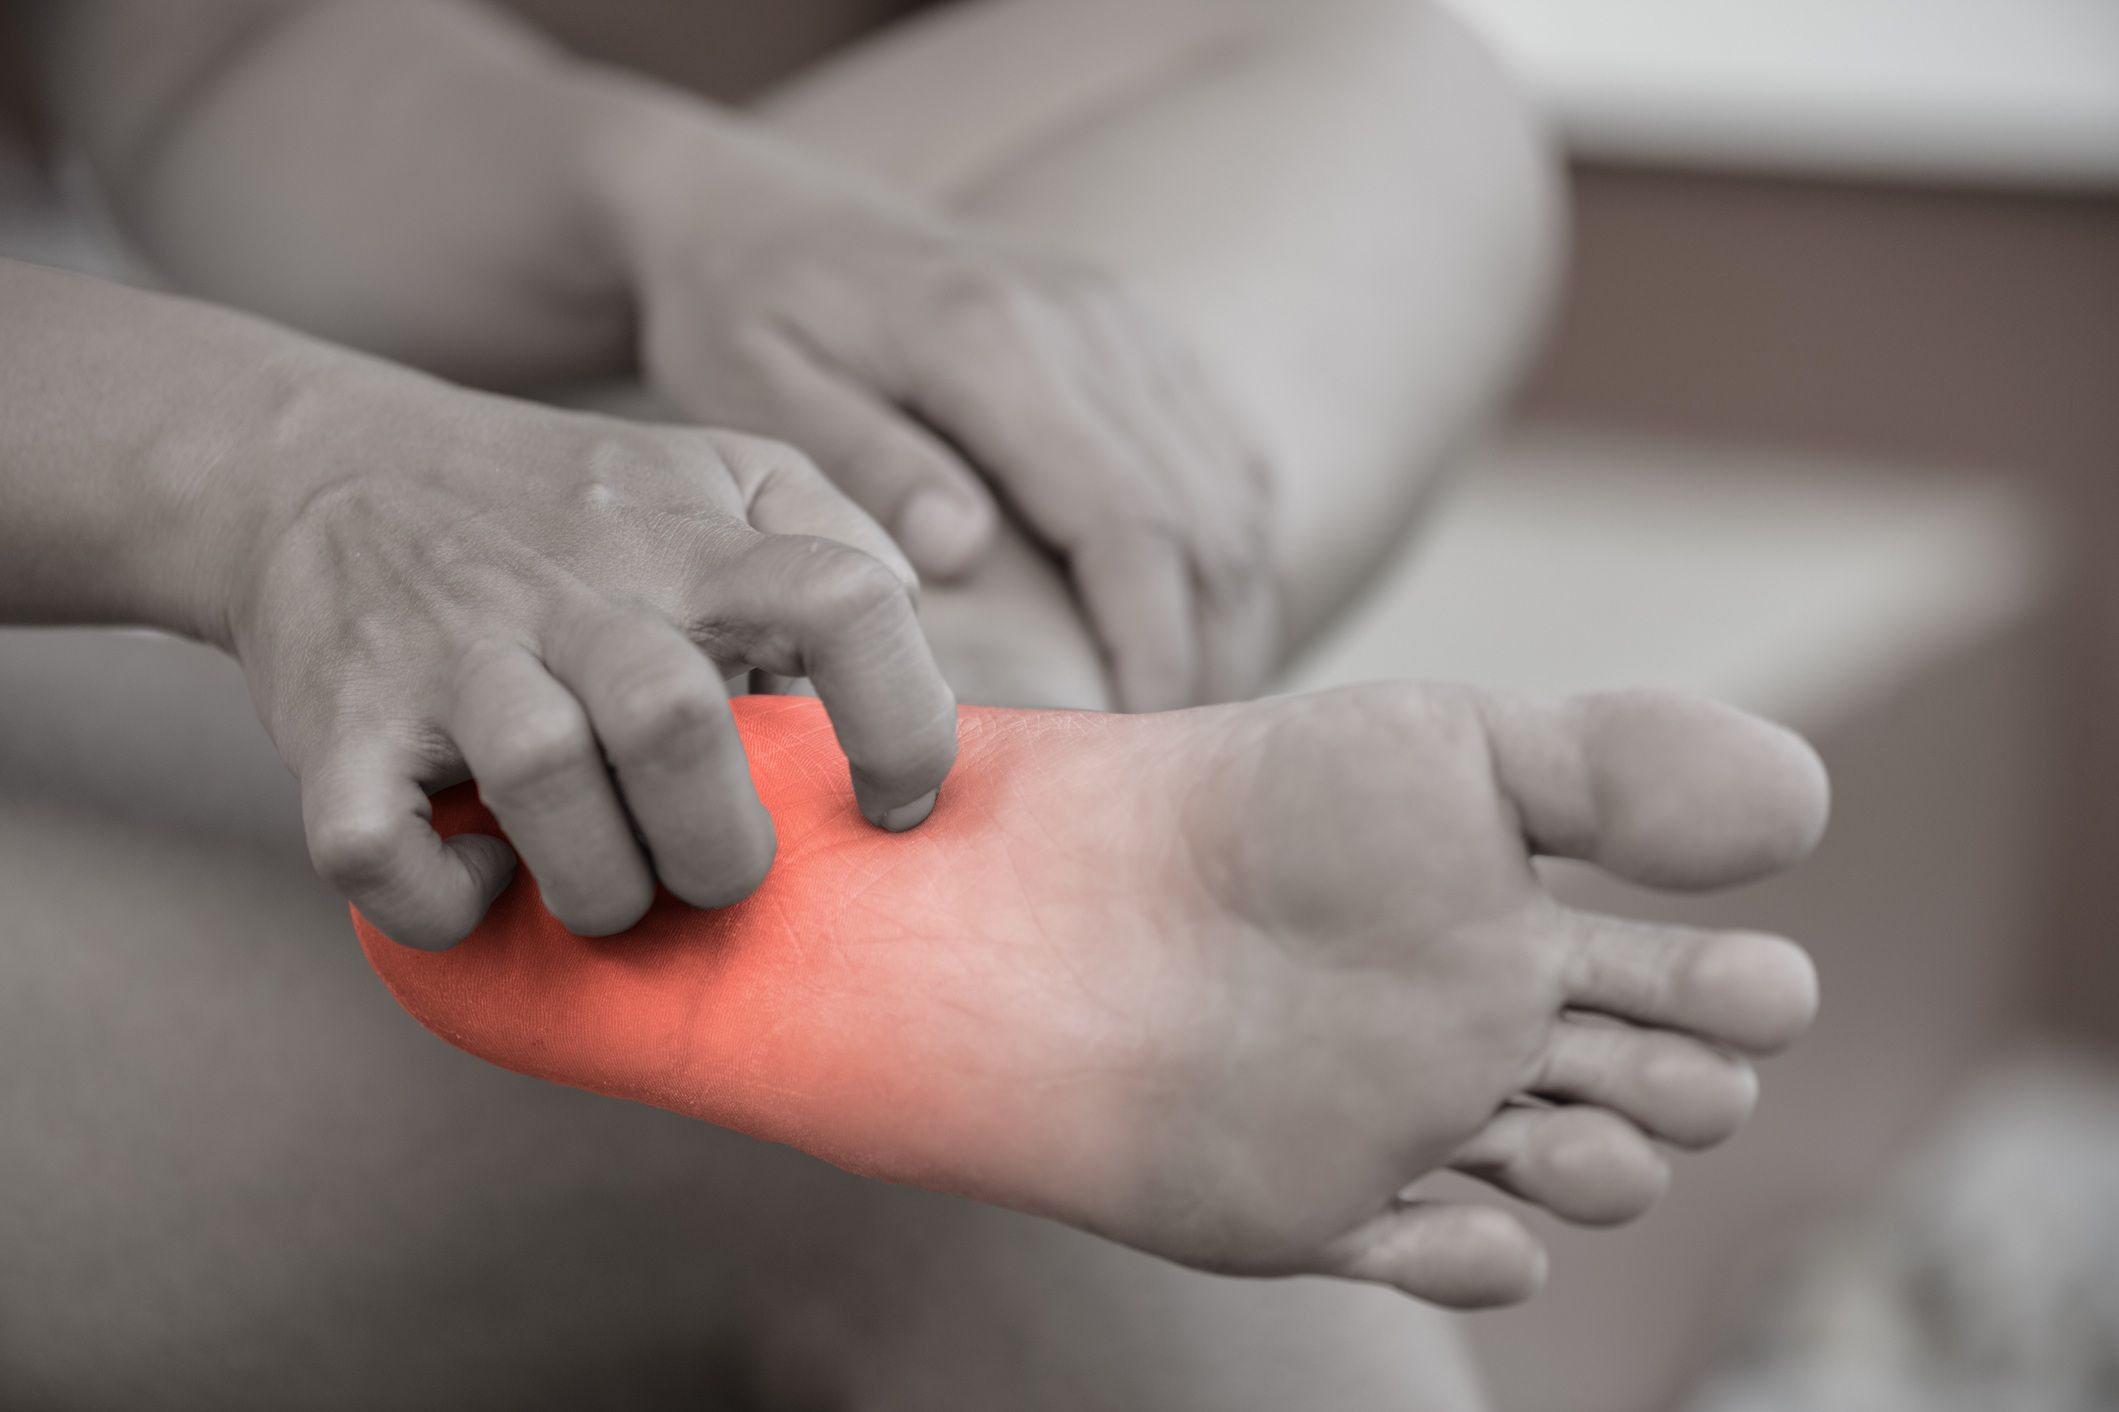 Regenerative medicine can decrease burning, sharp pains in peripheral neuropathy as well as decrease numbness